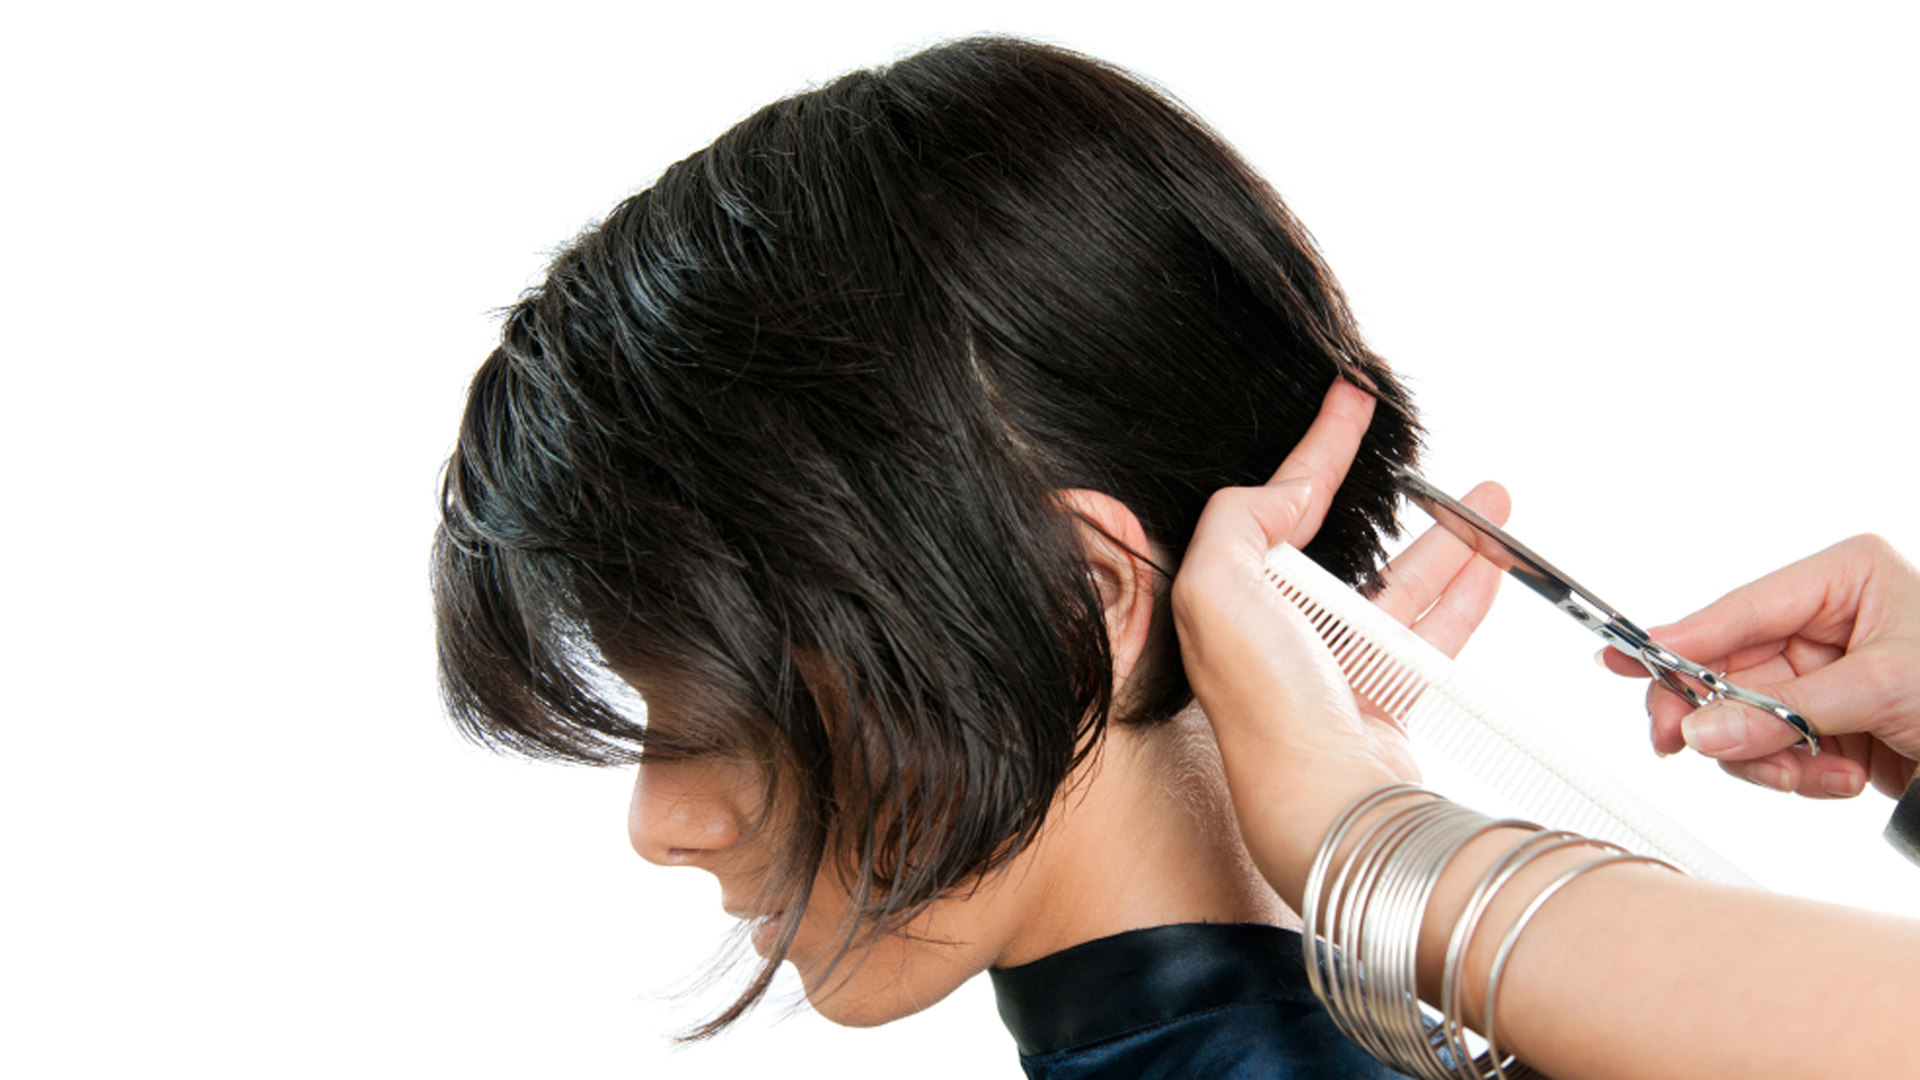 Hair Salons In Kannapolis Nc